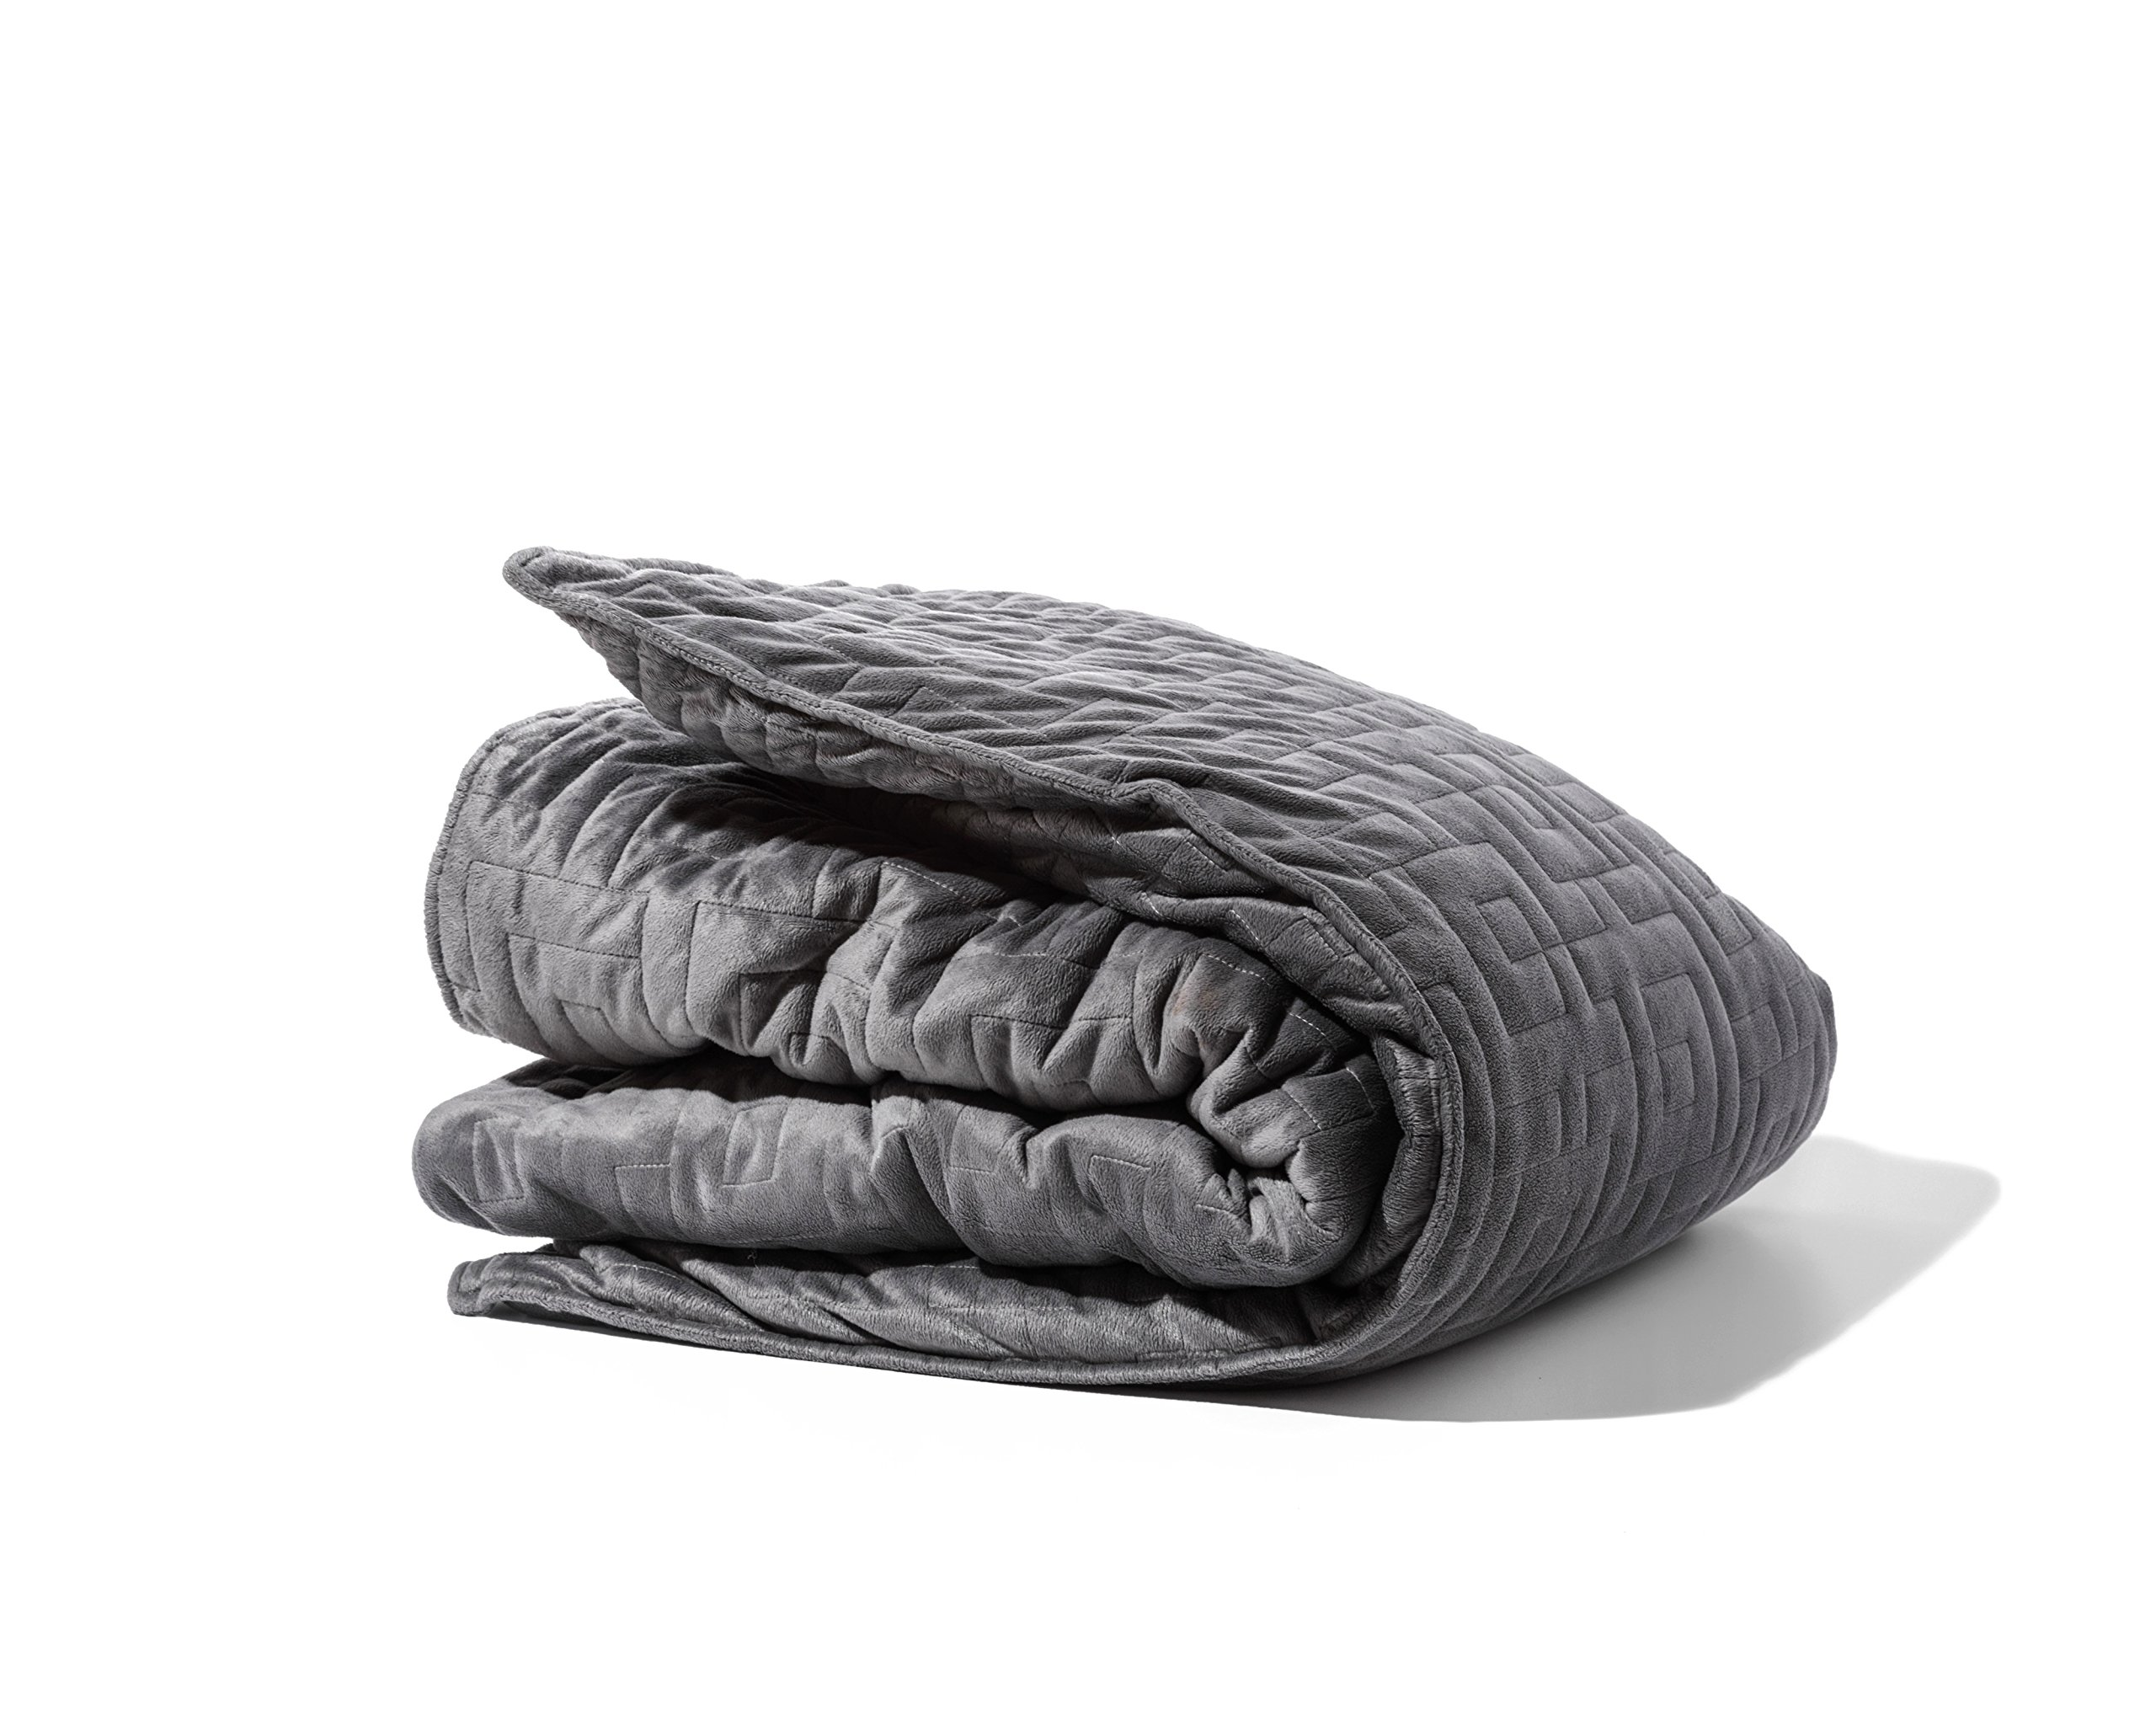 Gravity Blanket: The Weighted Blanket For Sleep, Stress and Anxiety, Space Grey 48'' x 72'' Size, 20-Pound